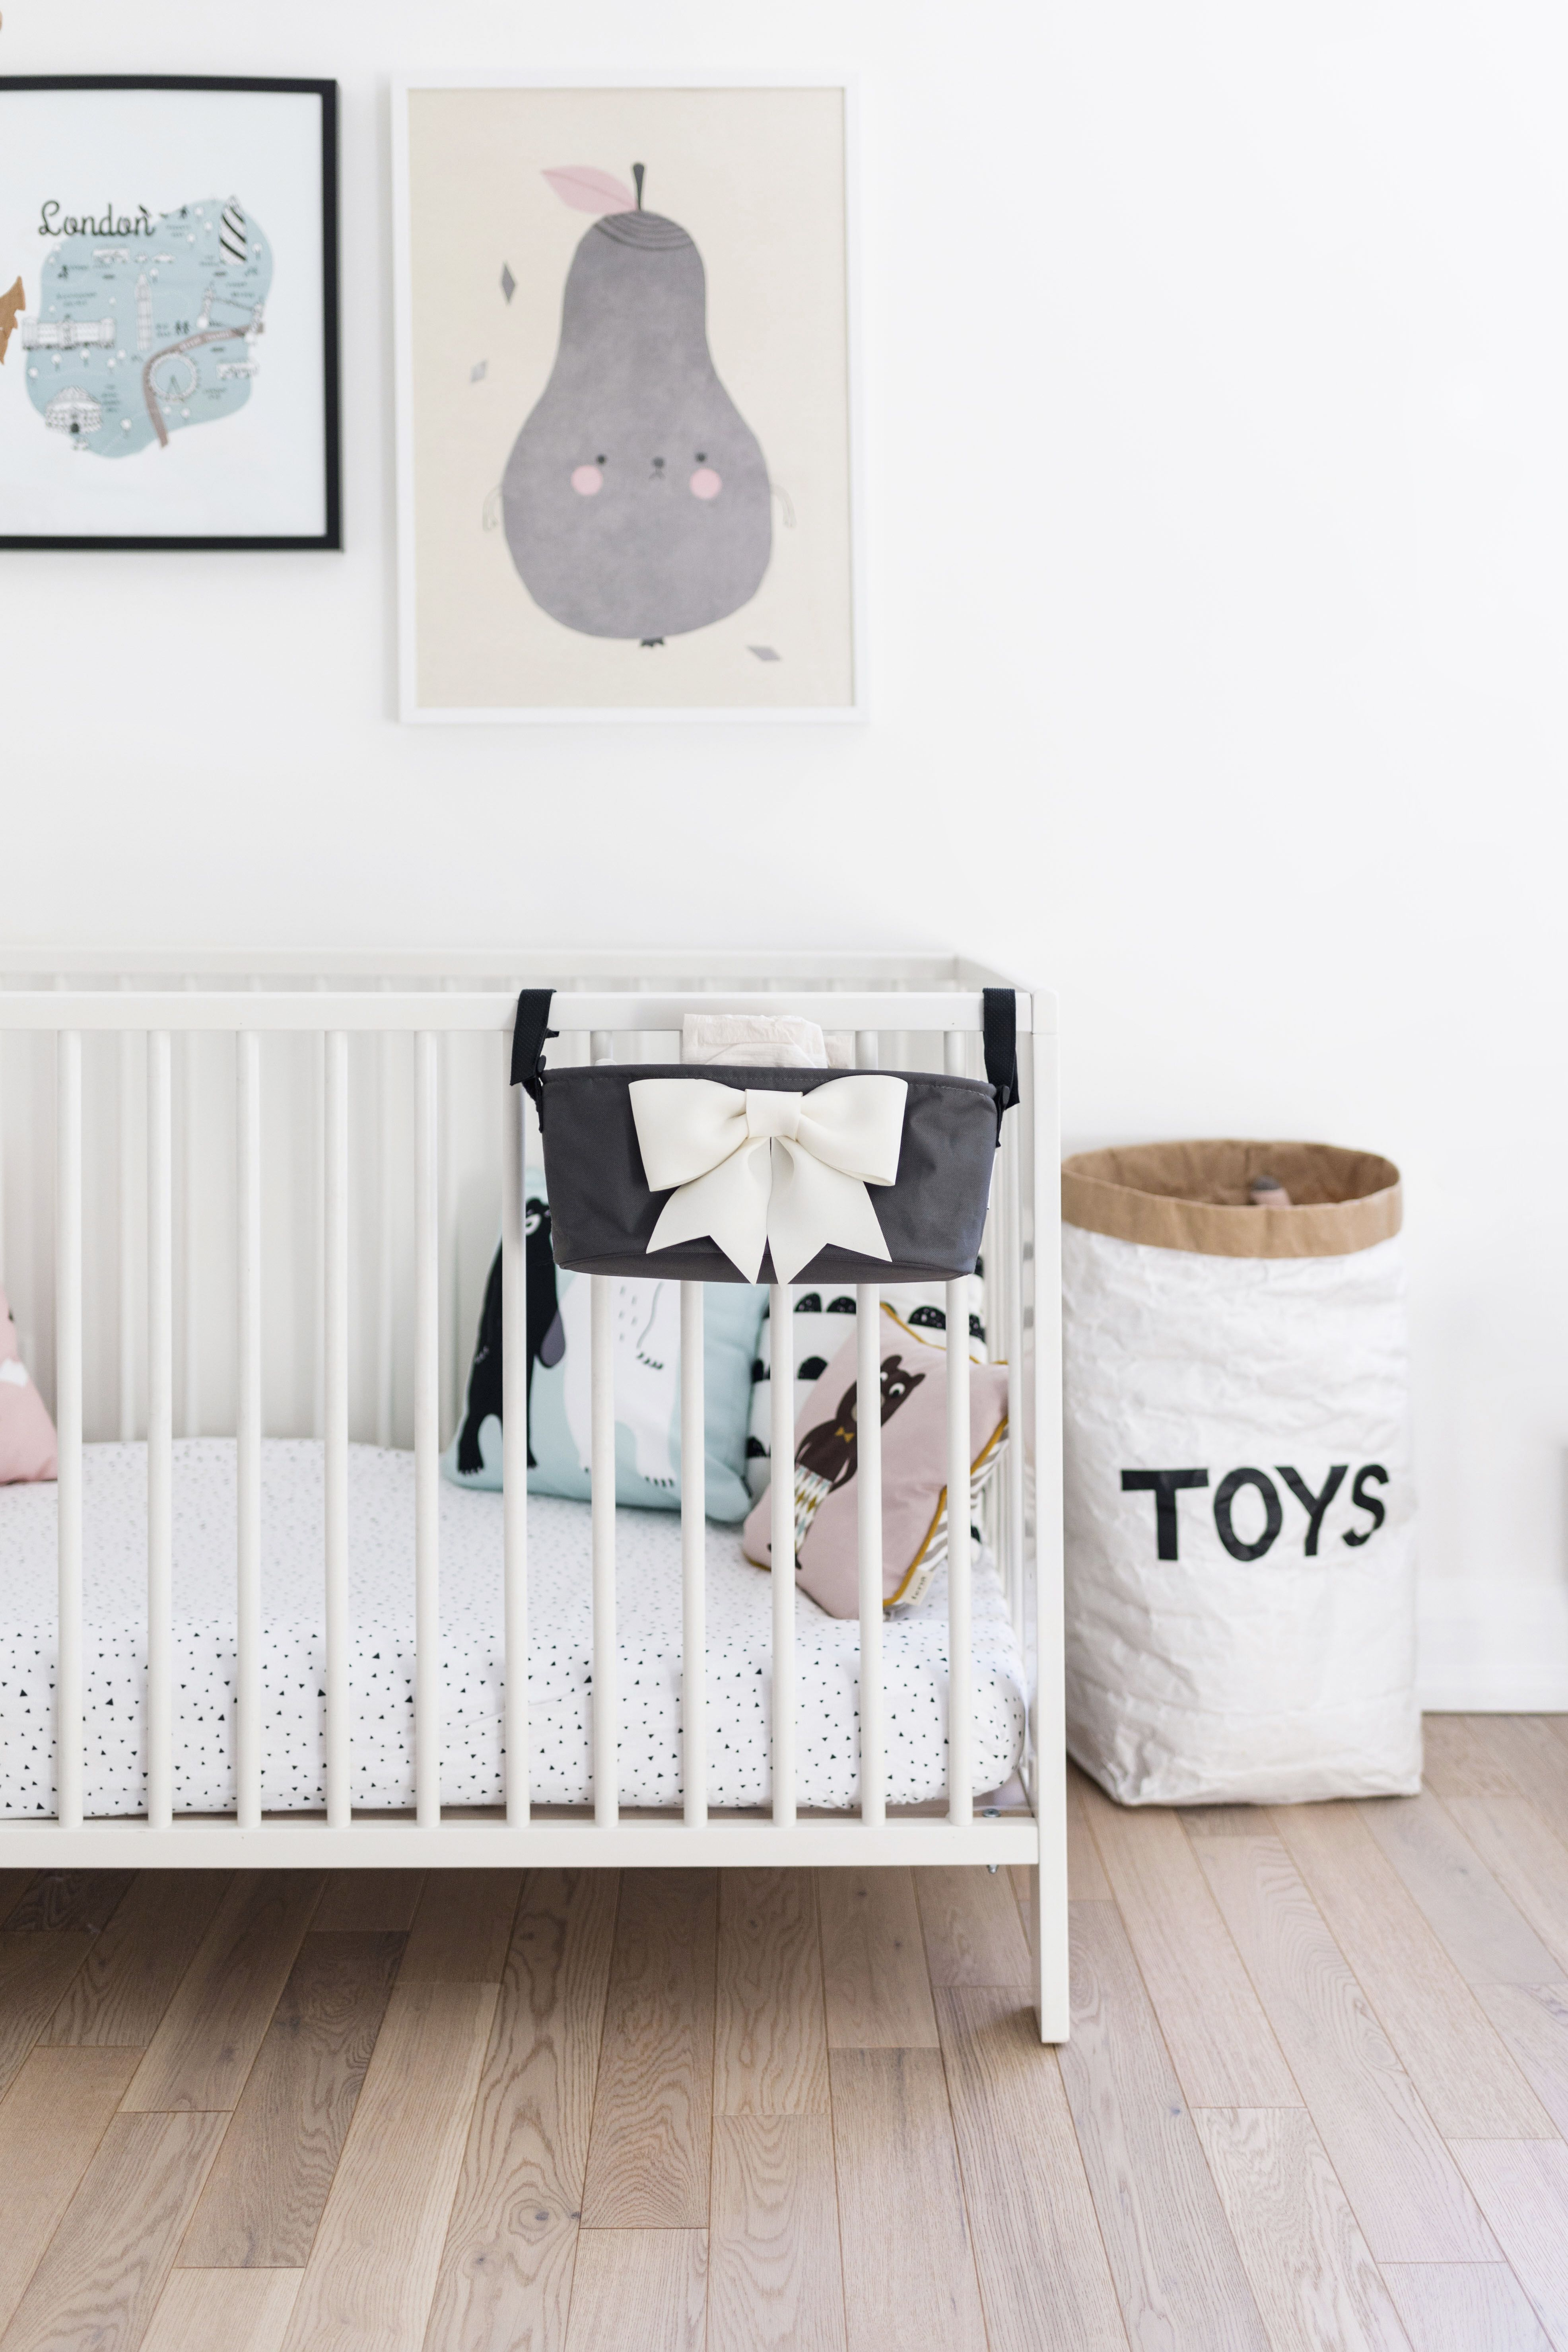 babies co bedside pin result to bed pinterest chicco for tutu cribs next image sleep sleeping baby me crib cot